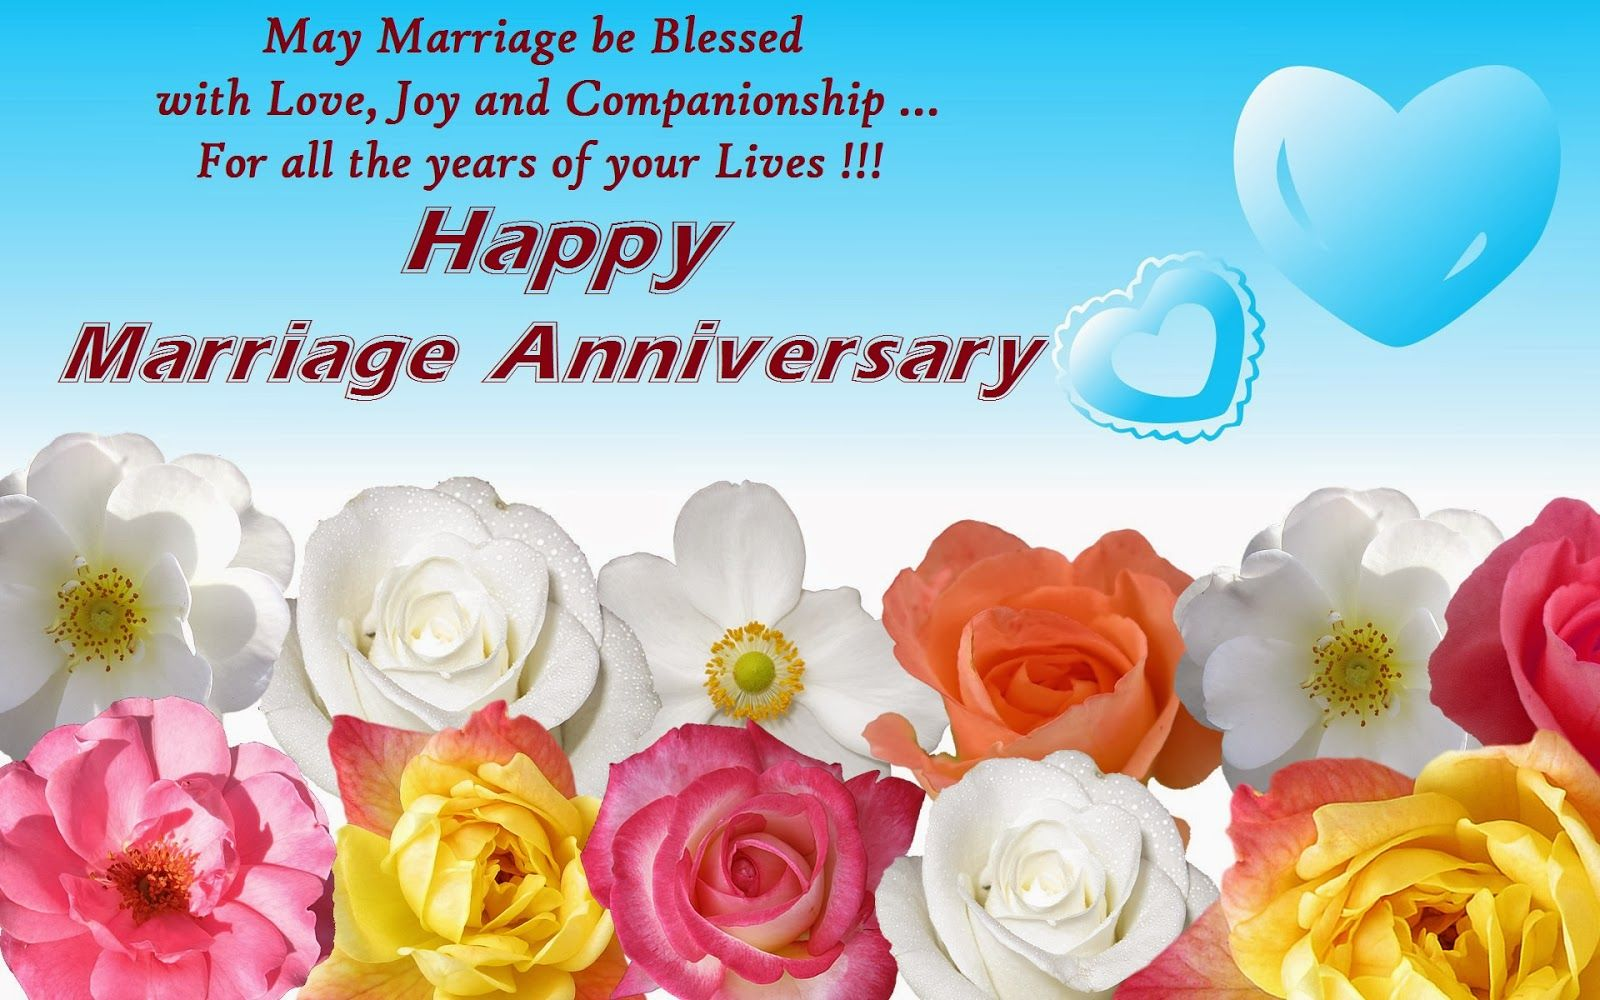 Romantic wedding anniversary wishes